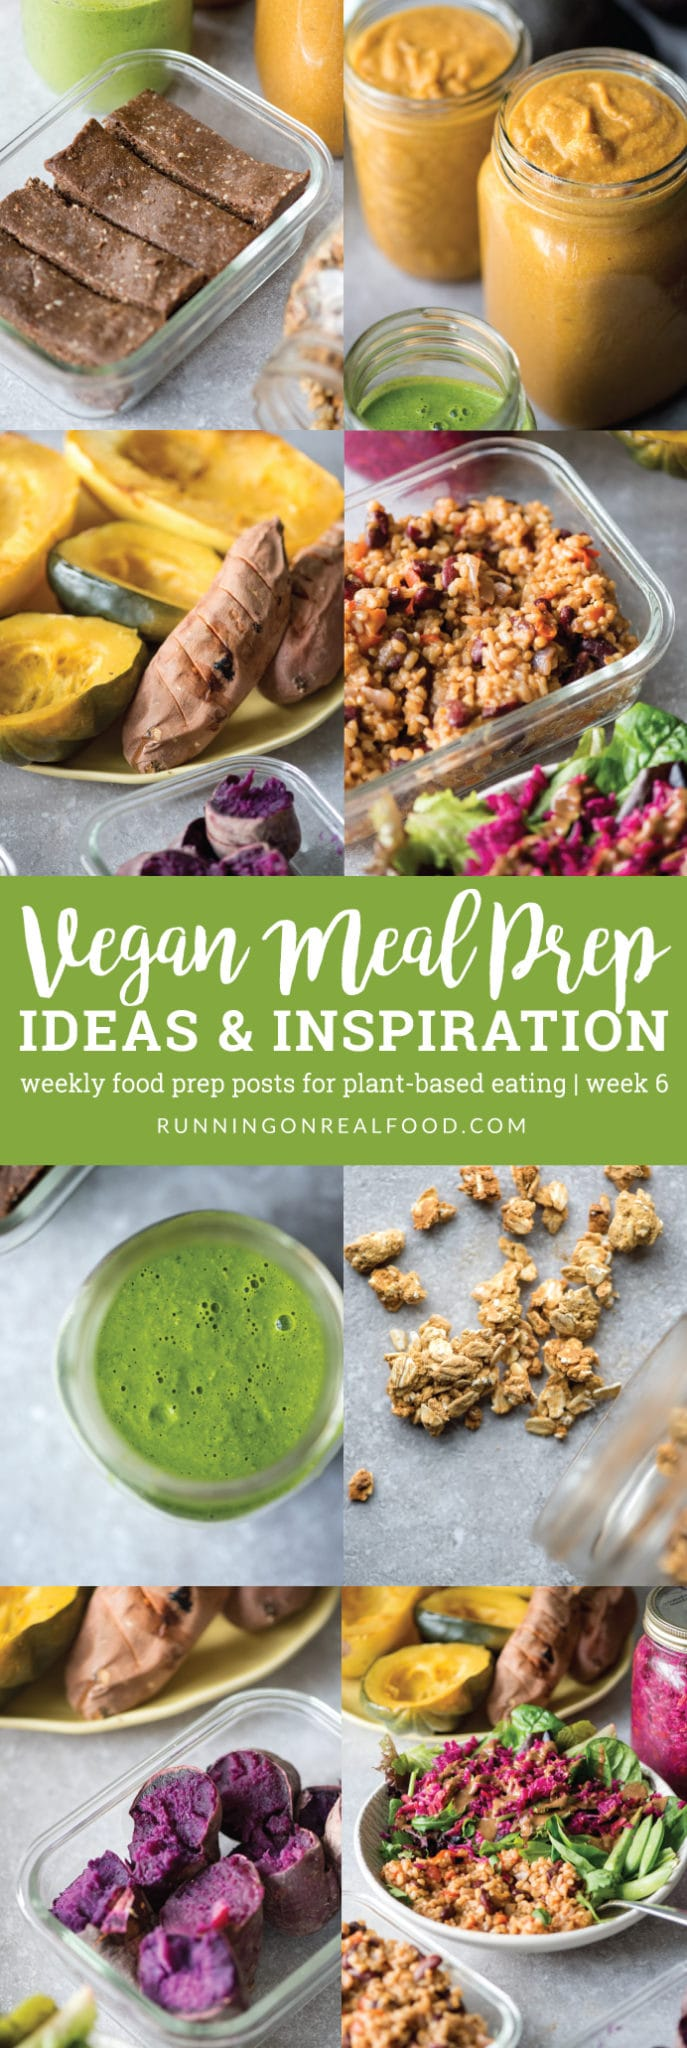 This weeks vegan meal prep ideas post includes granola, protein bars, rice and beans, cashew carrot soup, pesto sauce and more. Check back weekly for new plant-based food prep inspiration.